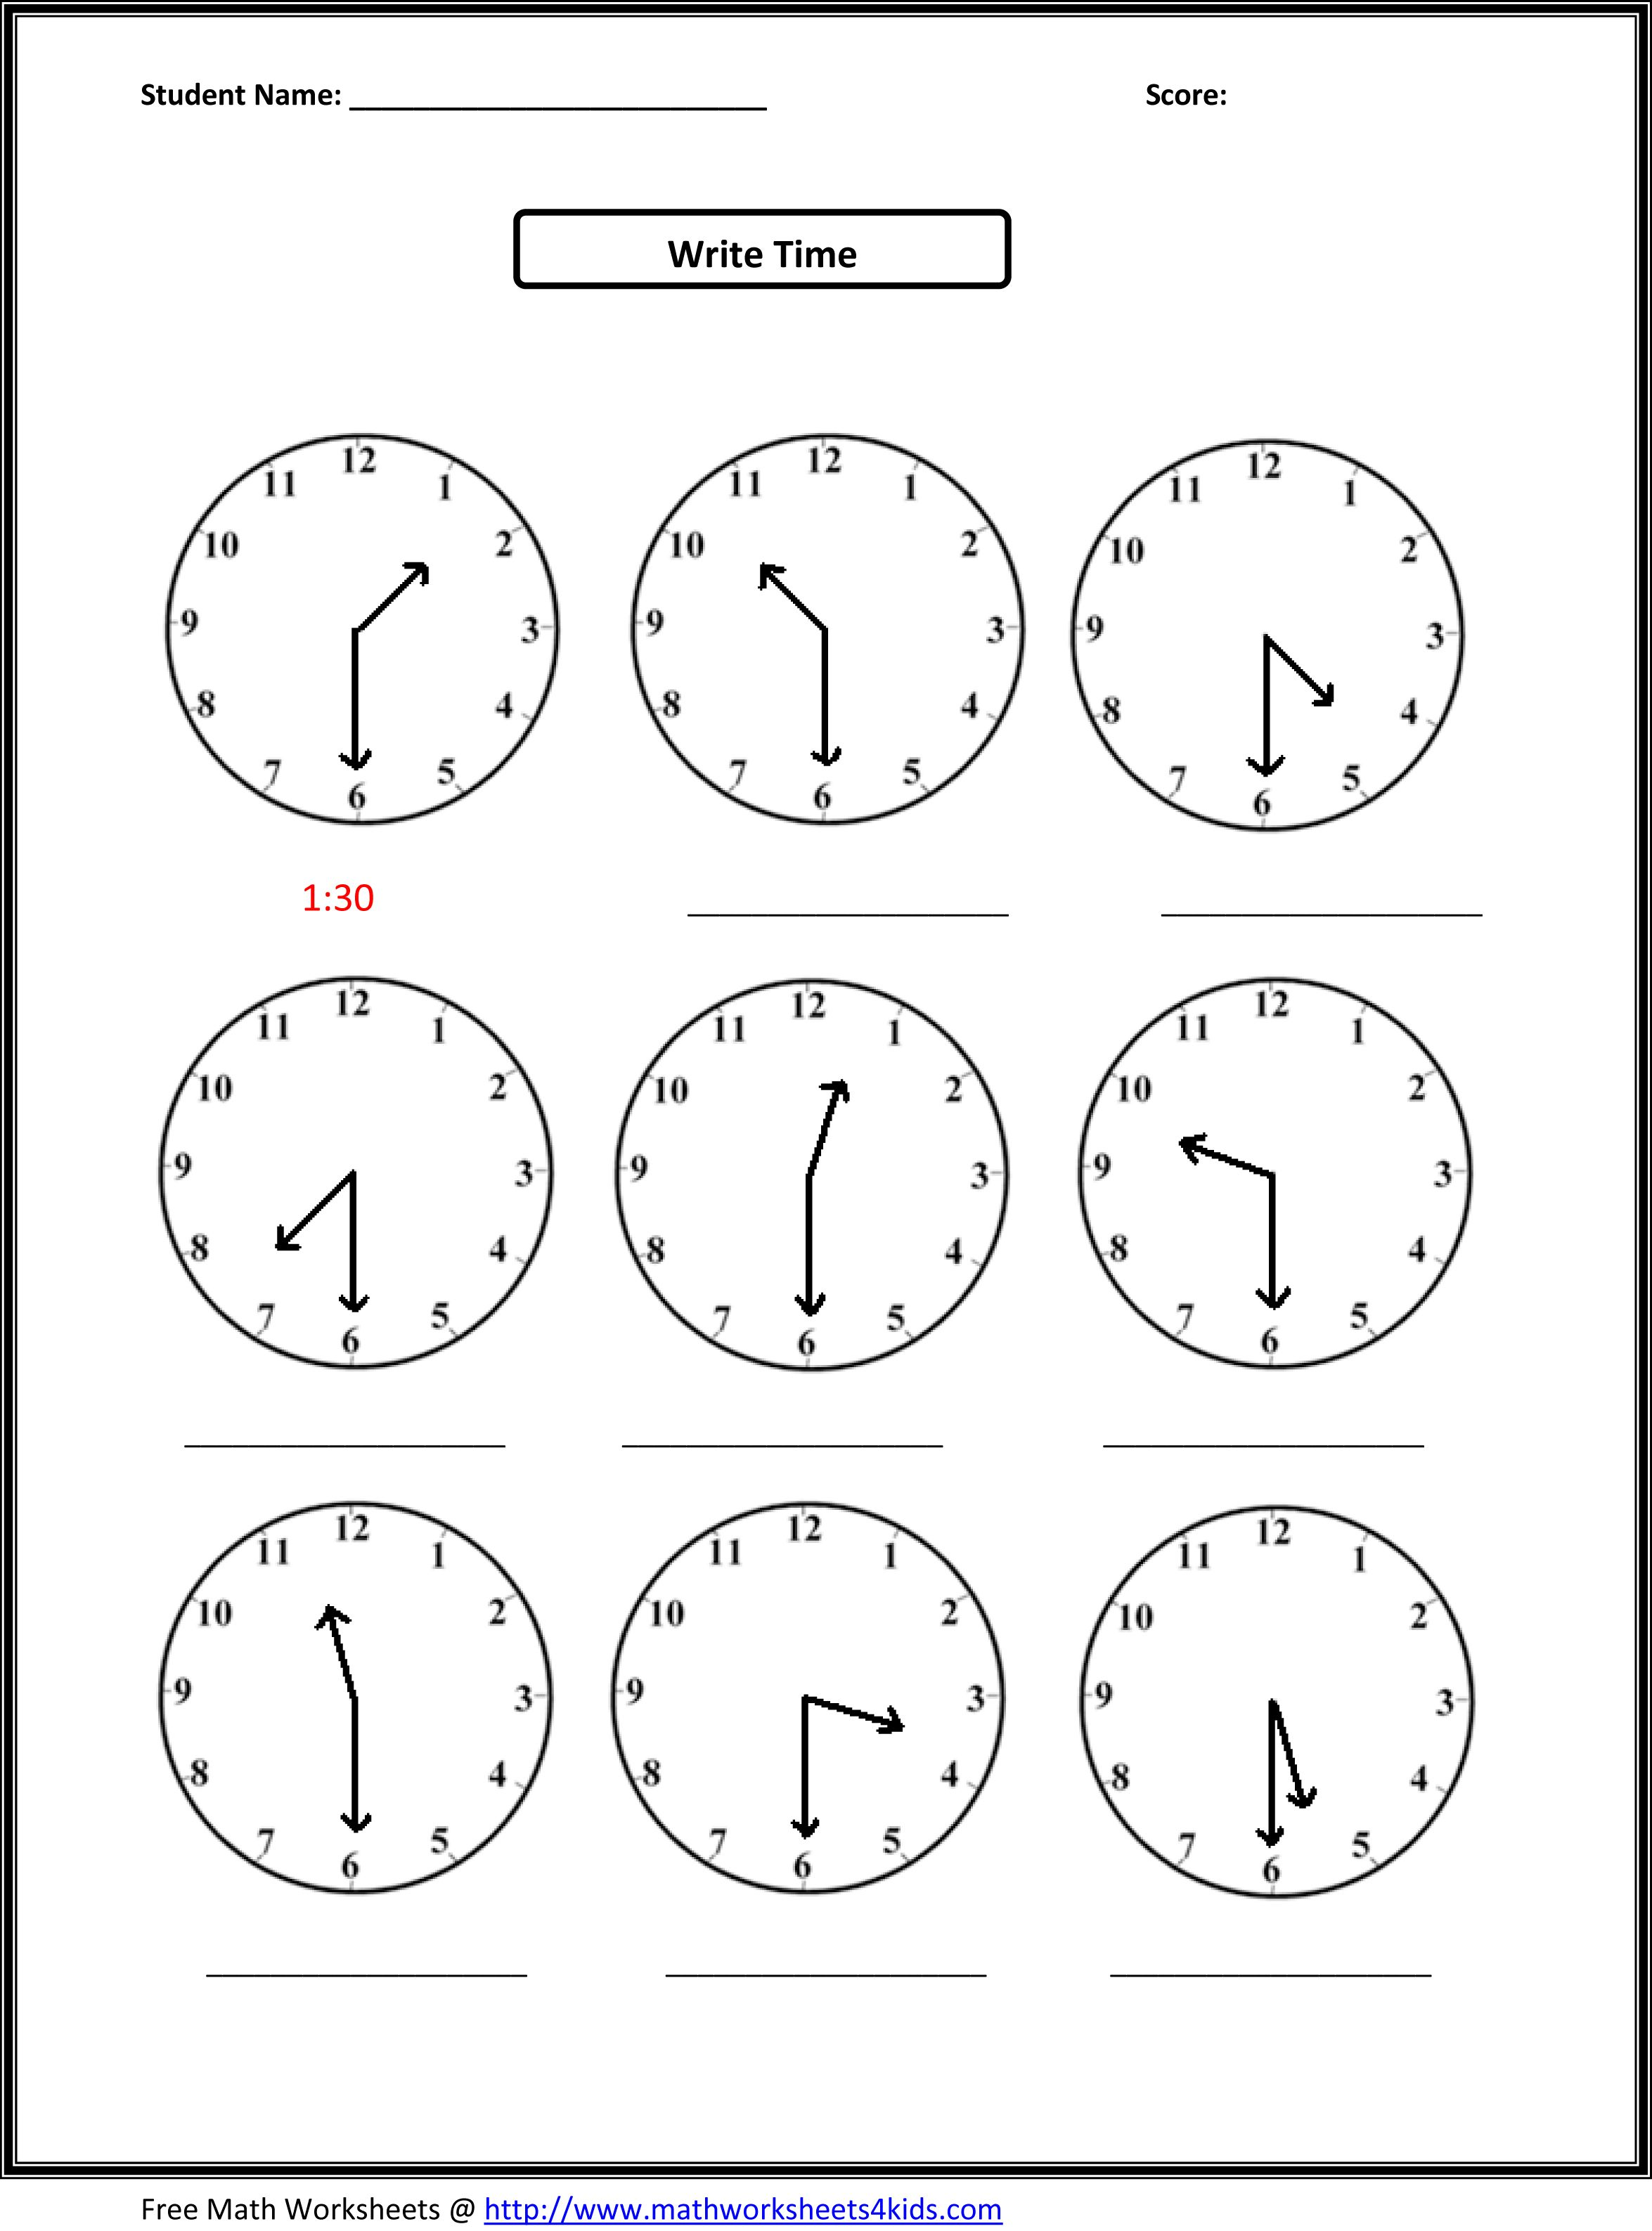 Weirdmailus  Inspiring Worksheet On Time For Grade   Reocurent With Inspiring Free Printable Telling Time Worksheets Nd Grade  Reocurent With Breathtaking Free Printable Easter Worksheets Also Merging Worksheets In Excel In Addition Volume Worksheets Grade  And Past Tense Verbs Worksheet As Well As Inferences Worksheet  Additionally Budget Calculator Worksheet From Reocurentcom With Weirdmailus  Inspiring Worksheet On Time For Grade   Reocurent With Breathtaking Free Printable Telling Time Worksheets Nd Grade  Reocurent And Inspiring Free Printable Easter Worksheets Also Merging Worksheets In Excel In Addition Volume Worksheets Grade  From Reocurentcom